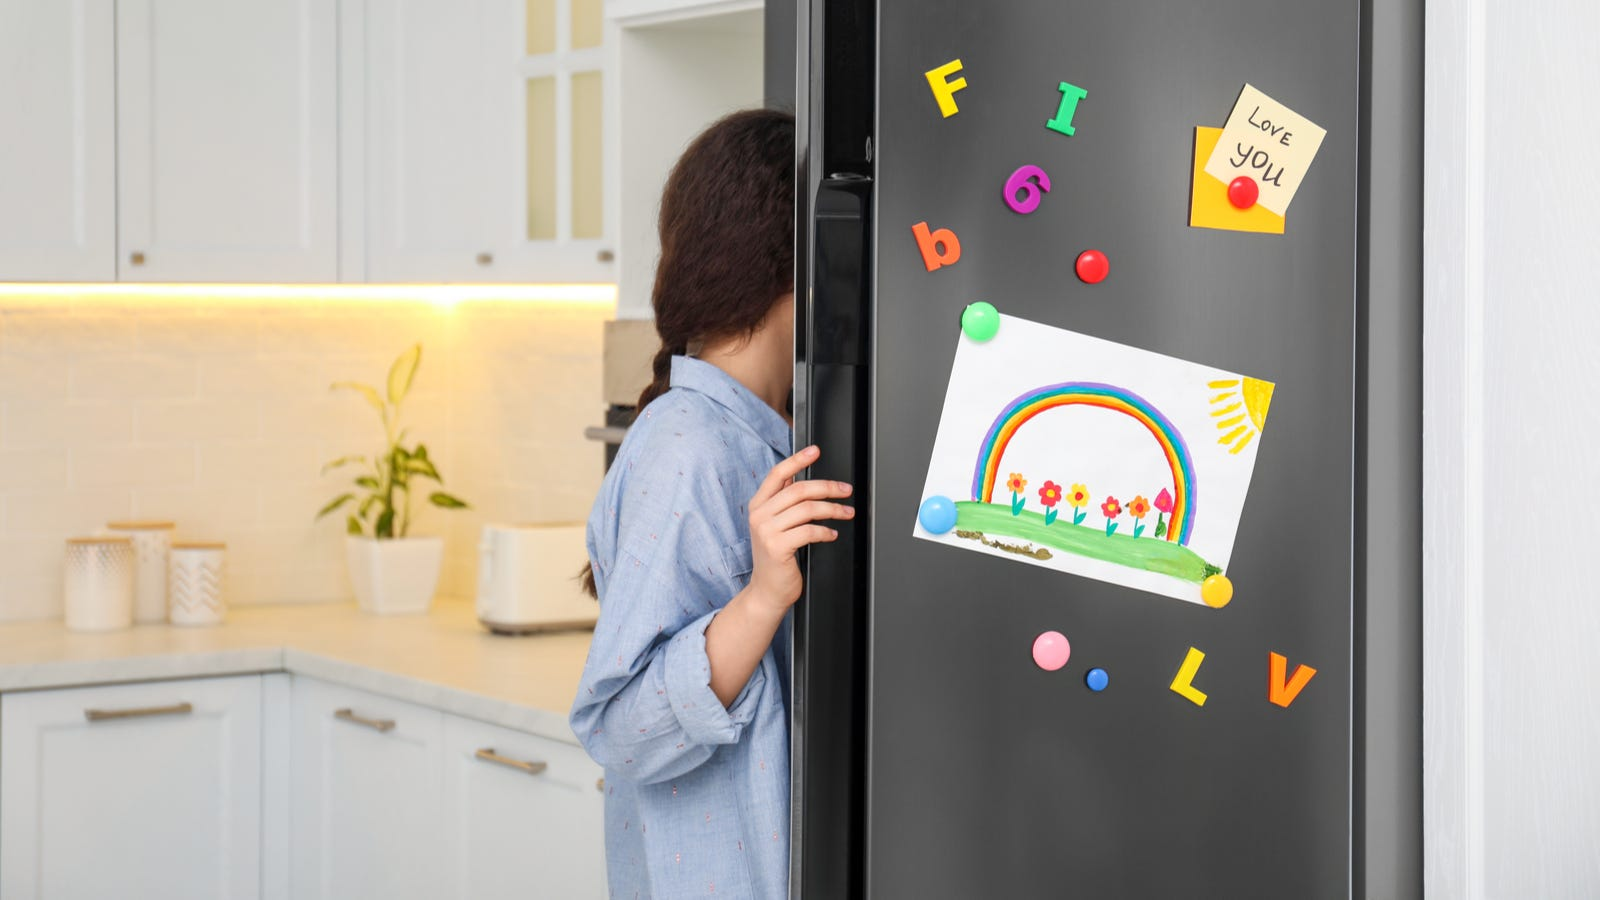 A woman opening a fridge door and grabbing something.